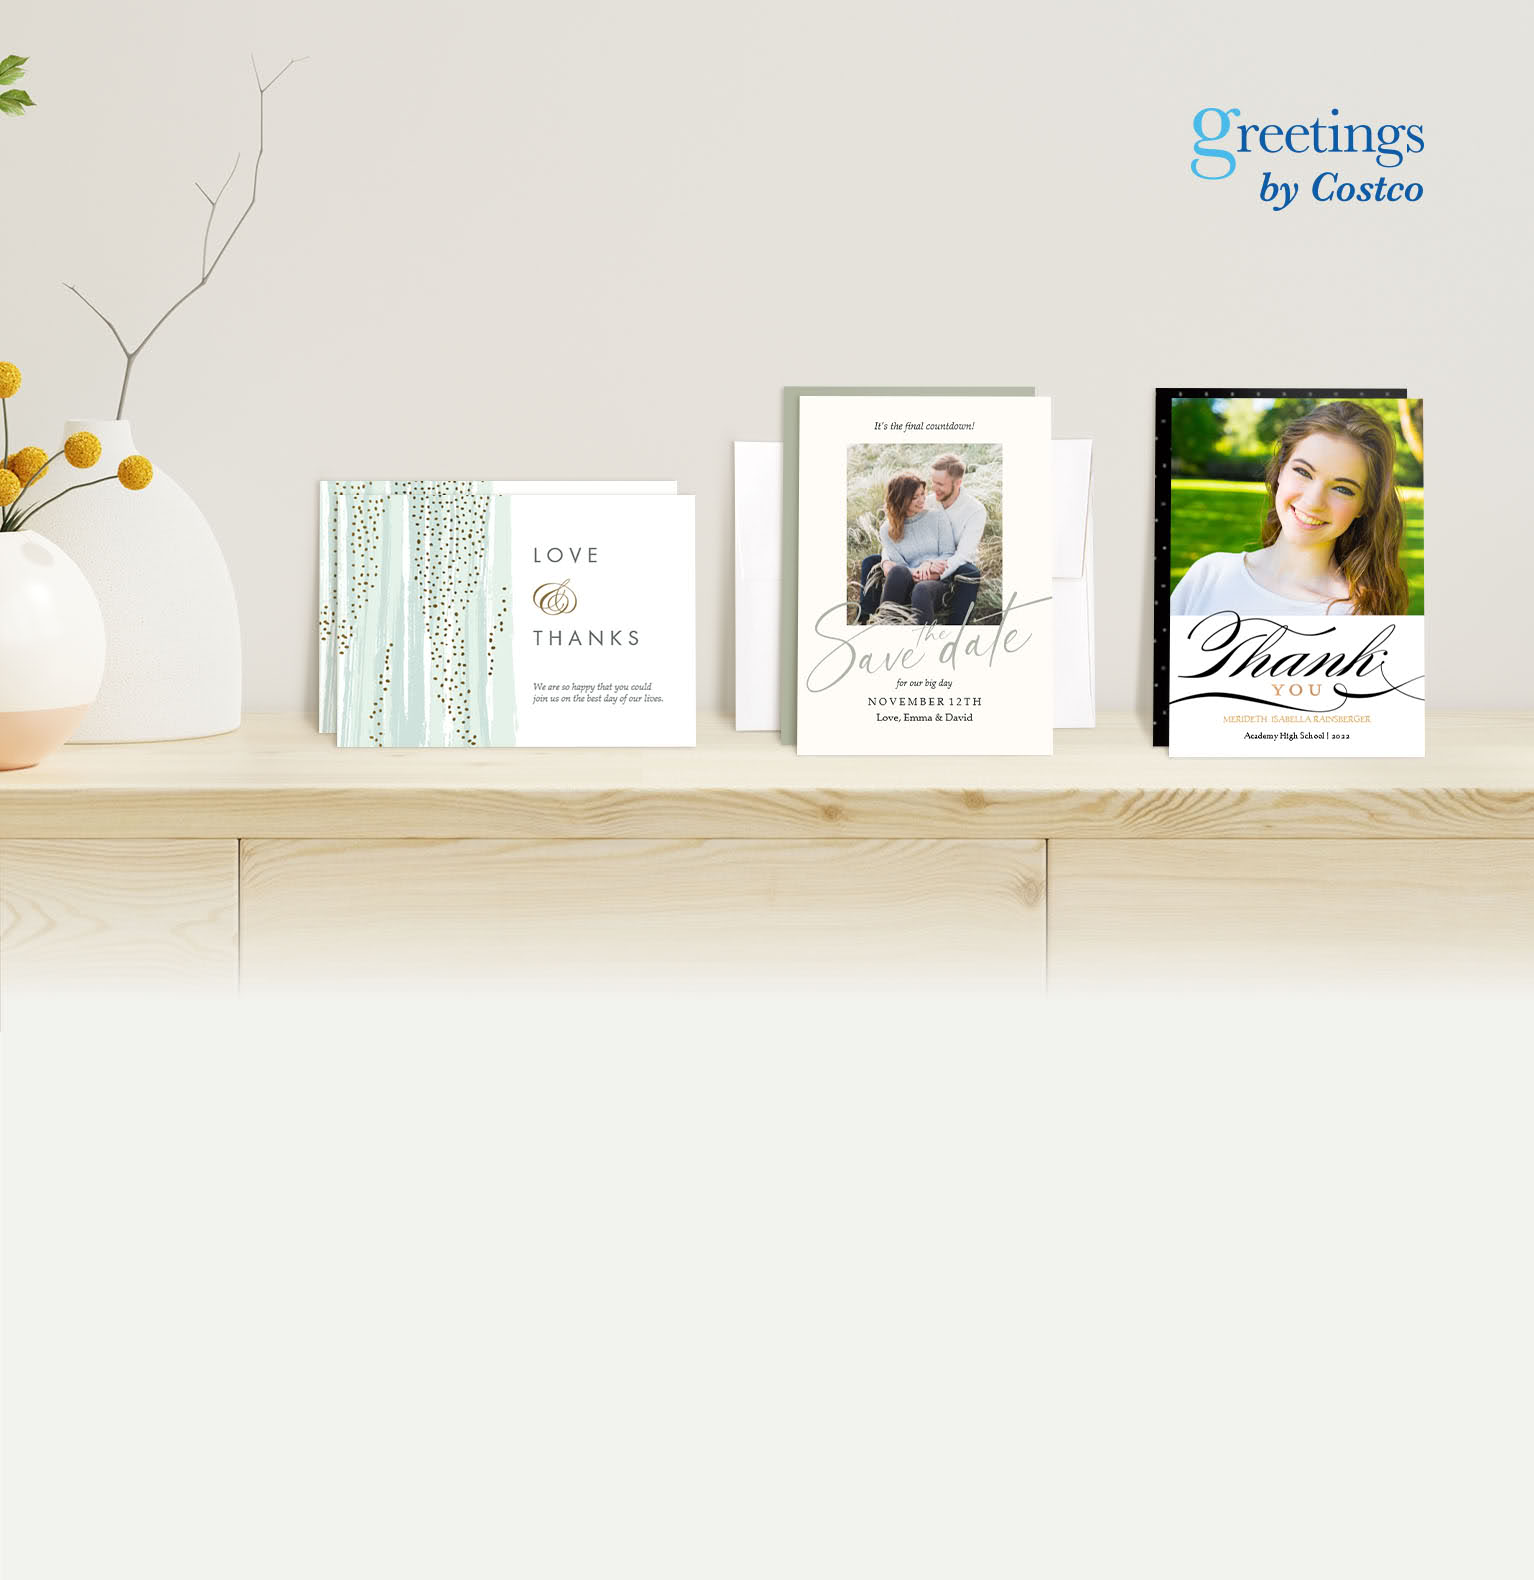 Costco Christmas Cards 2021 Greeting Cards Holiday Birthday Wedding Cards Costco Photo Centre